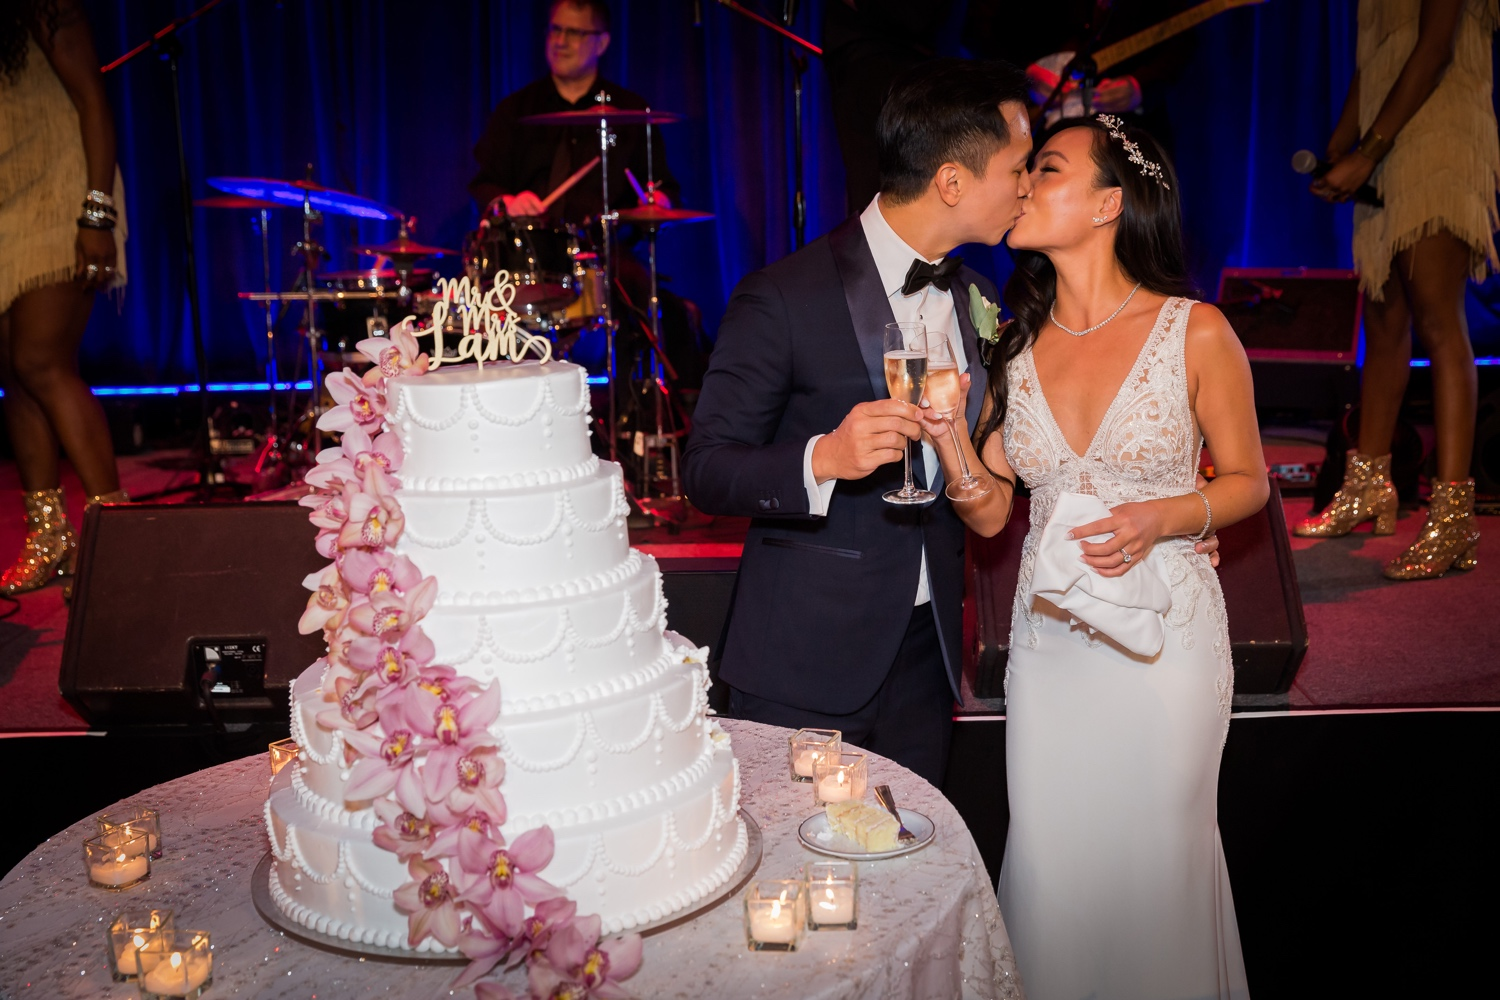 A newly wedded couple kissing next to their wedding cake during a wedding reception at Cipriani Wall Street in New York City.